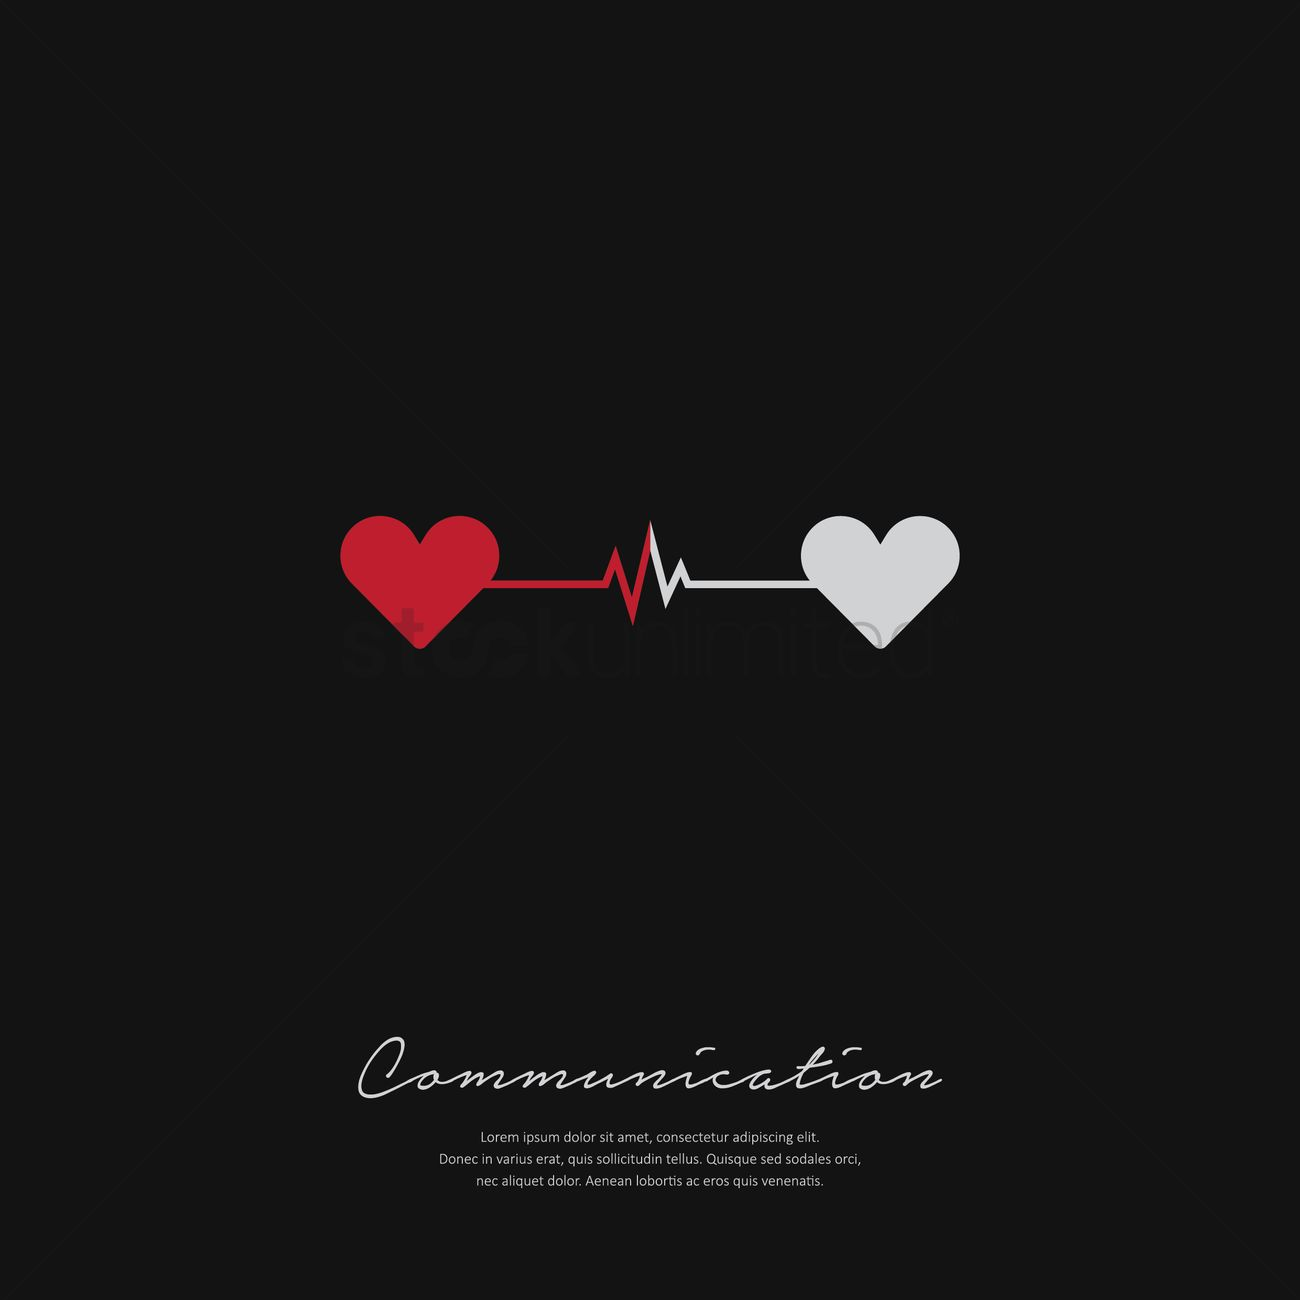 Communication With Love Background Vector Image 1798033 Stockunlimited